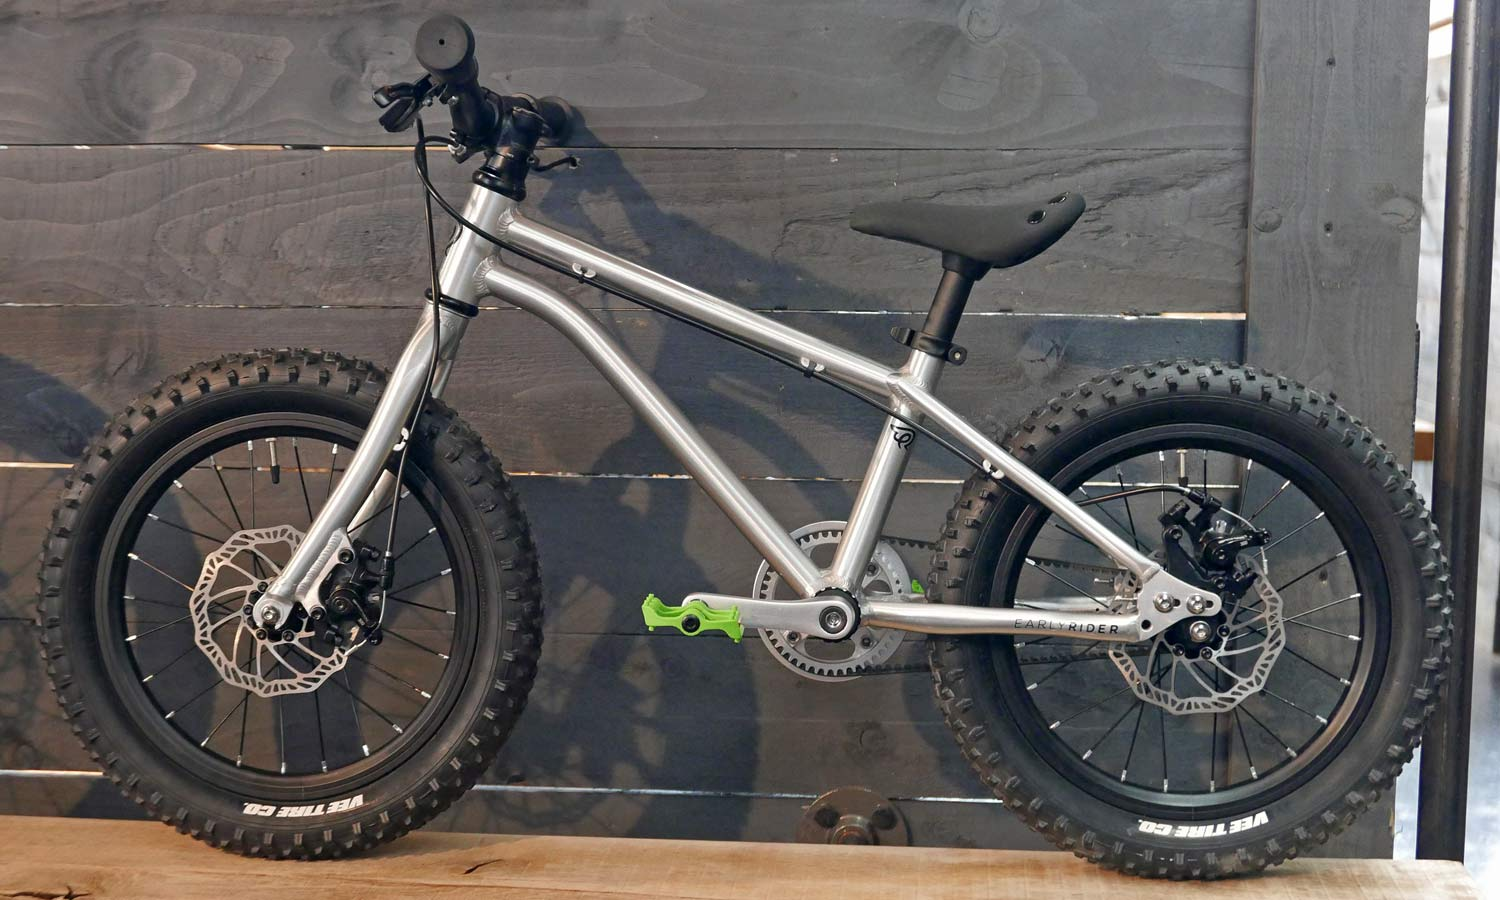 Early Rider + Lil Shredder affordable, lightweight aluminum alloy performance kids mountain bikes